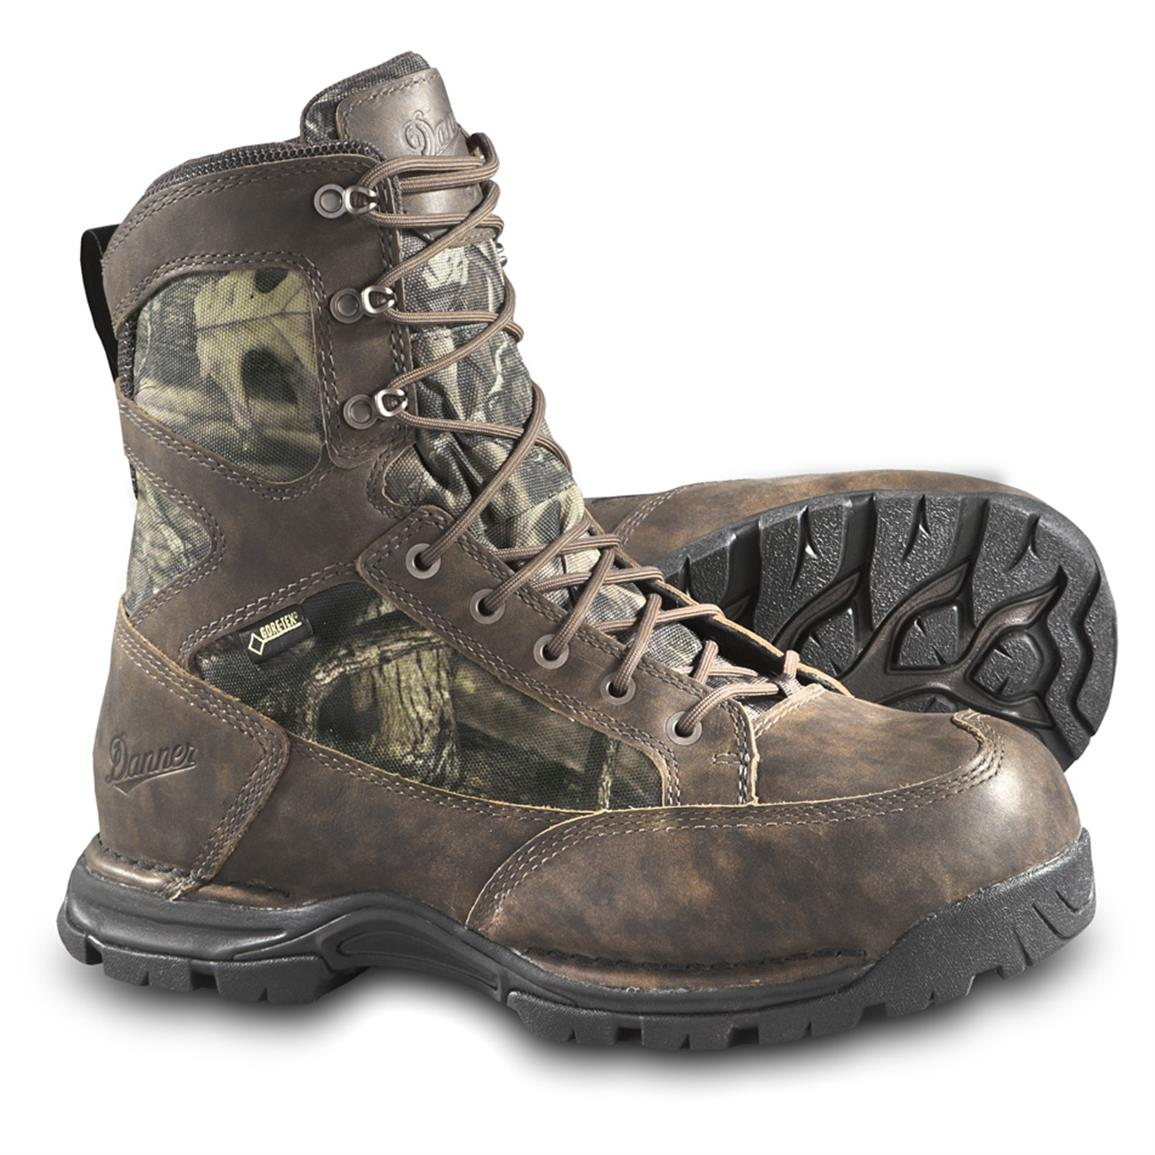 Danner Pronghorn Men's Insulated Boots, 800 Grams, Mossy Oak Break ...